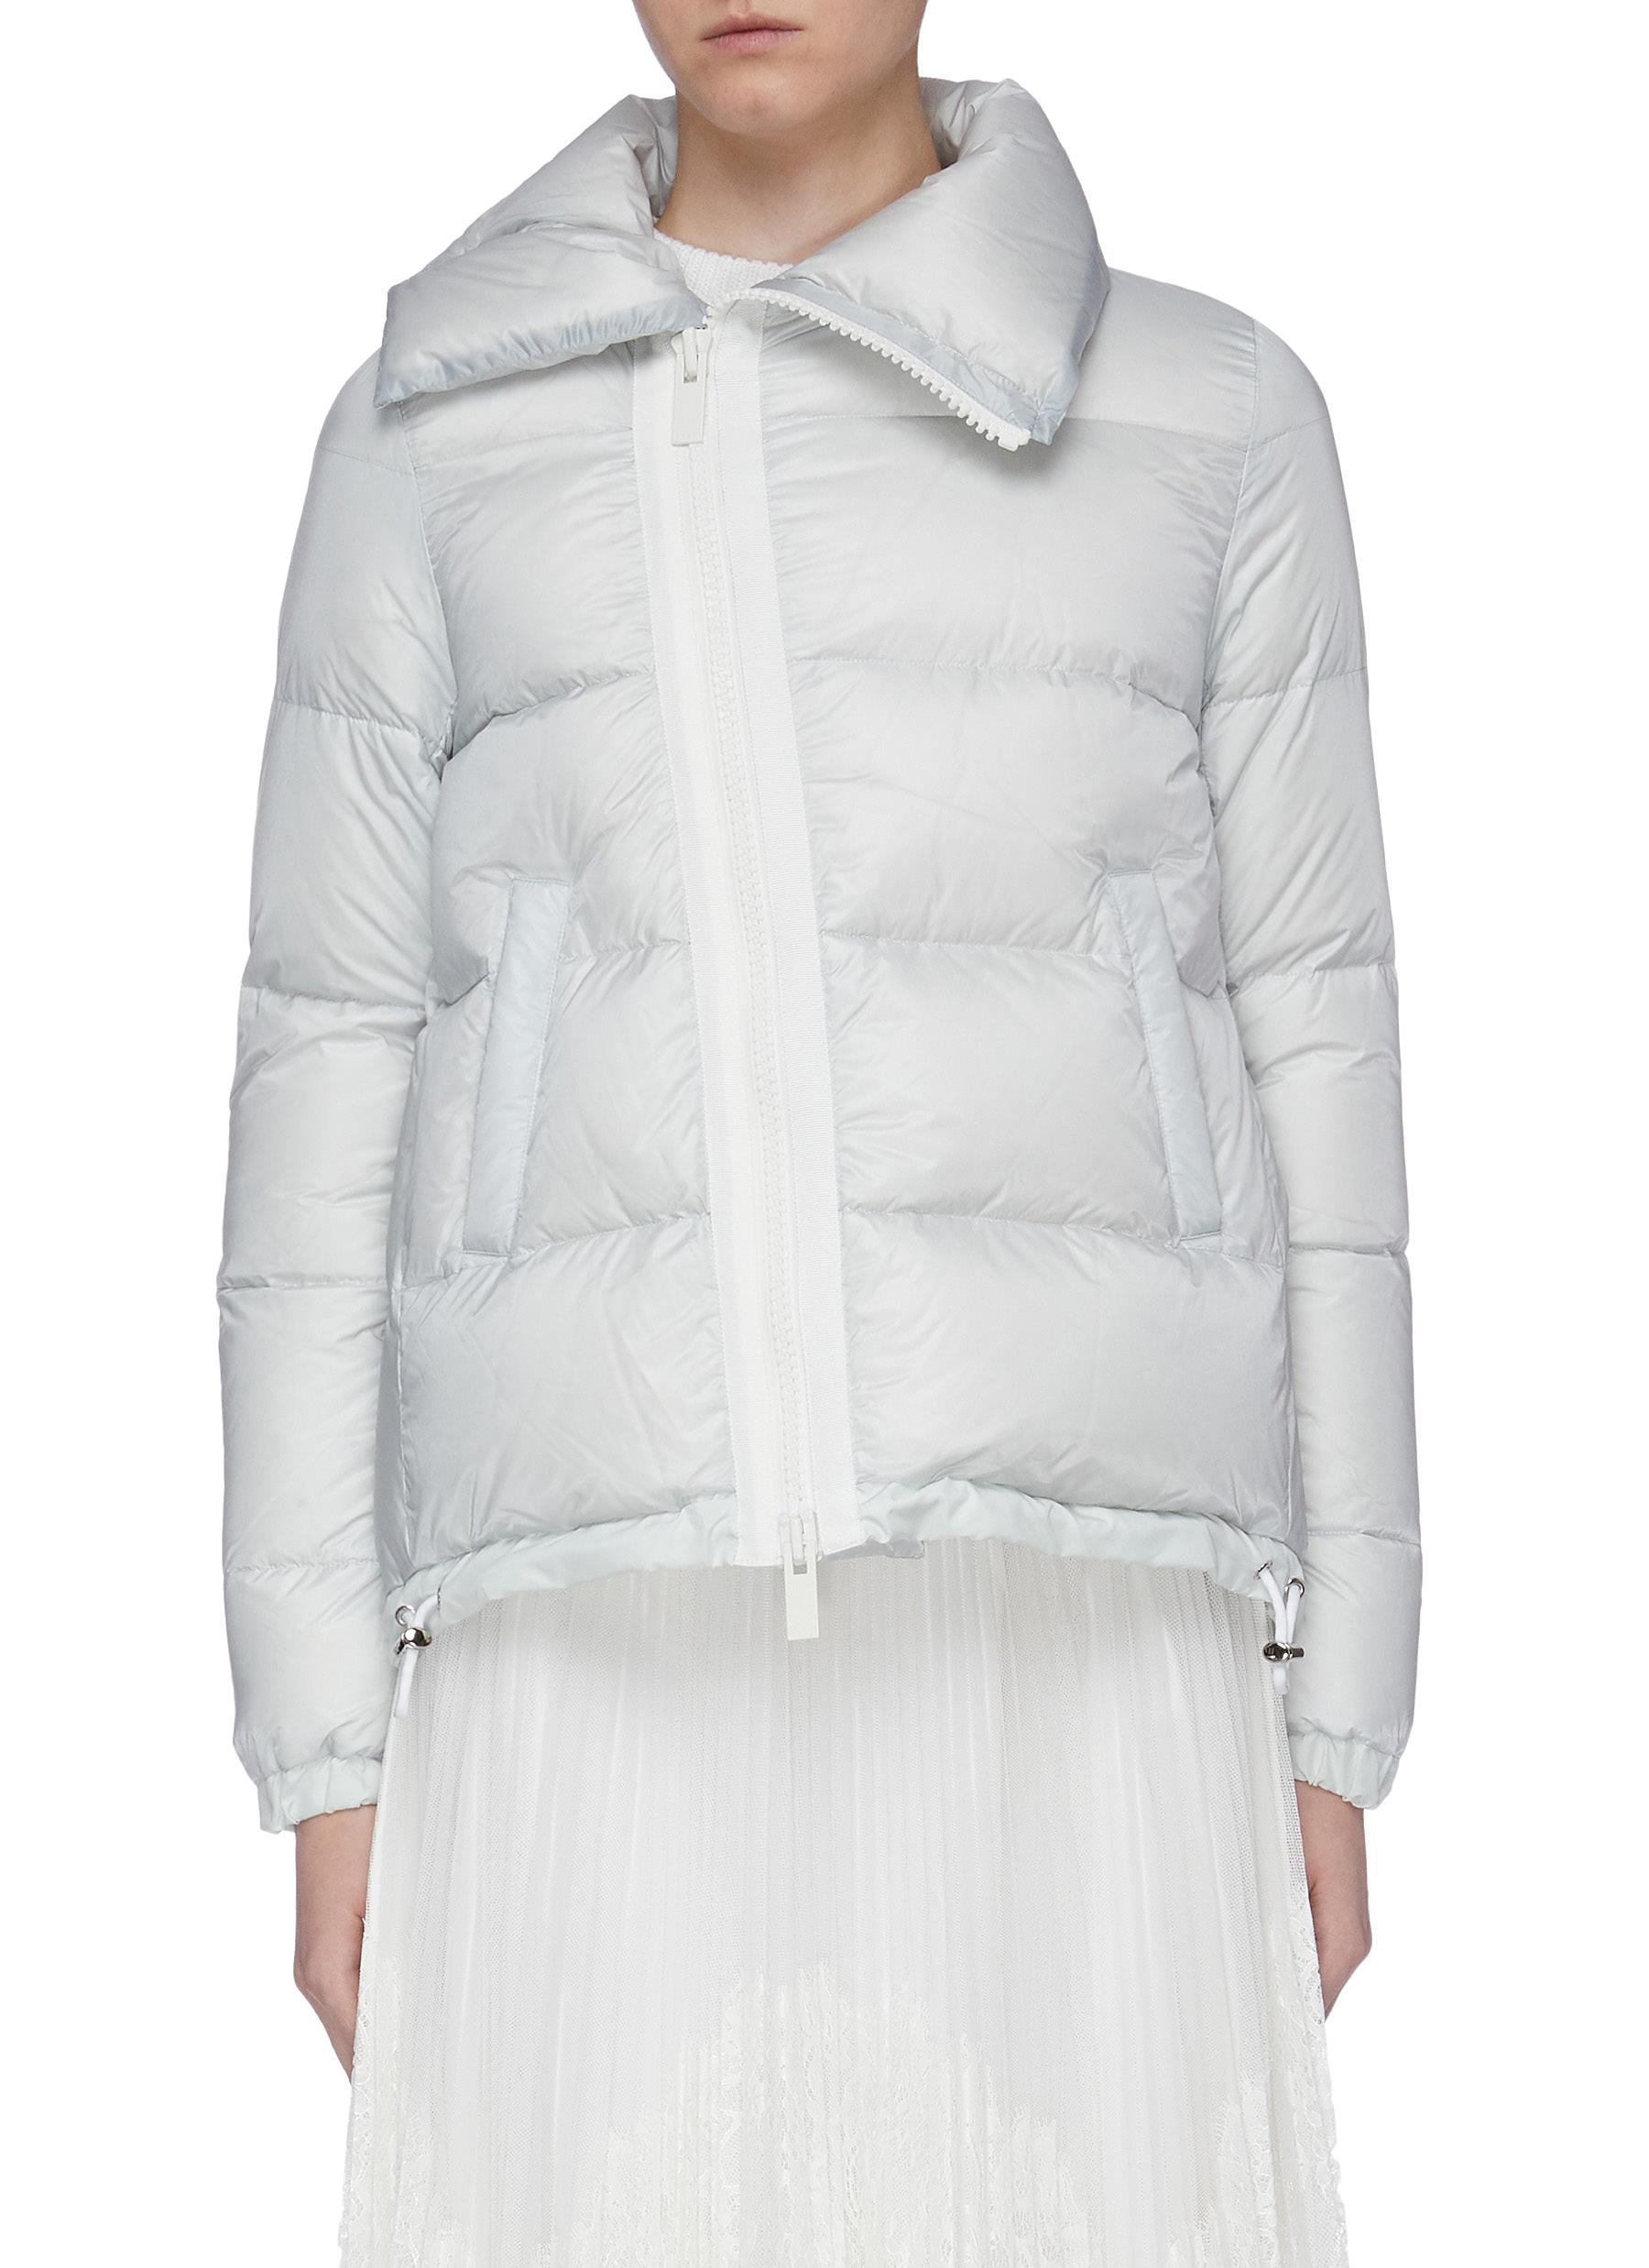 Slant zip high neck down puffer jacket by Sacai